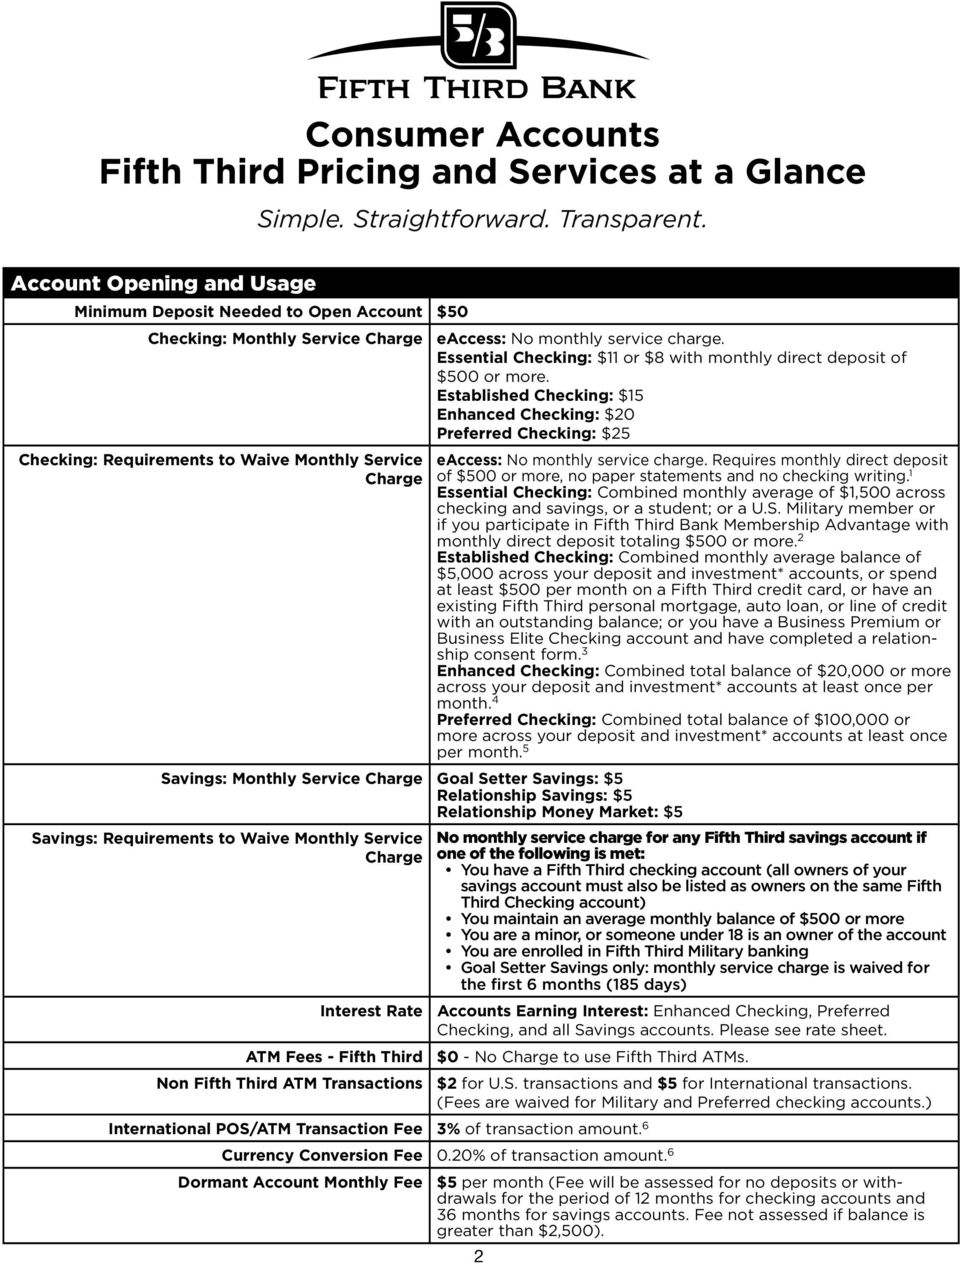 RULES AND REGULATIONS APPLICABLE TO ALL FIFTH THIRD CONSUMER AND ...